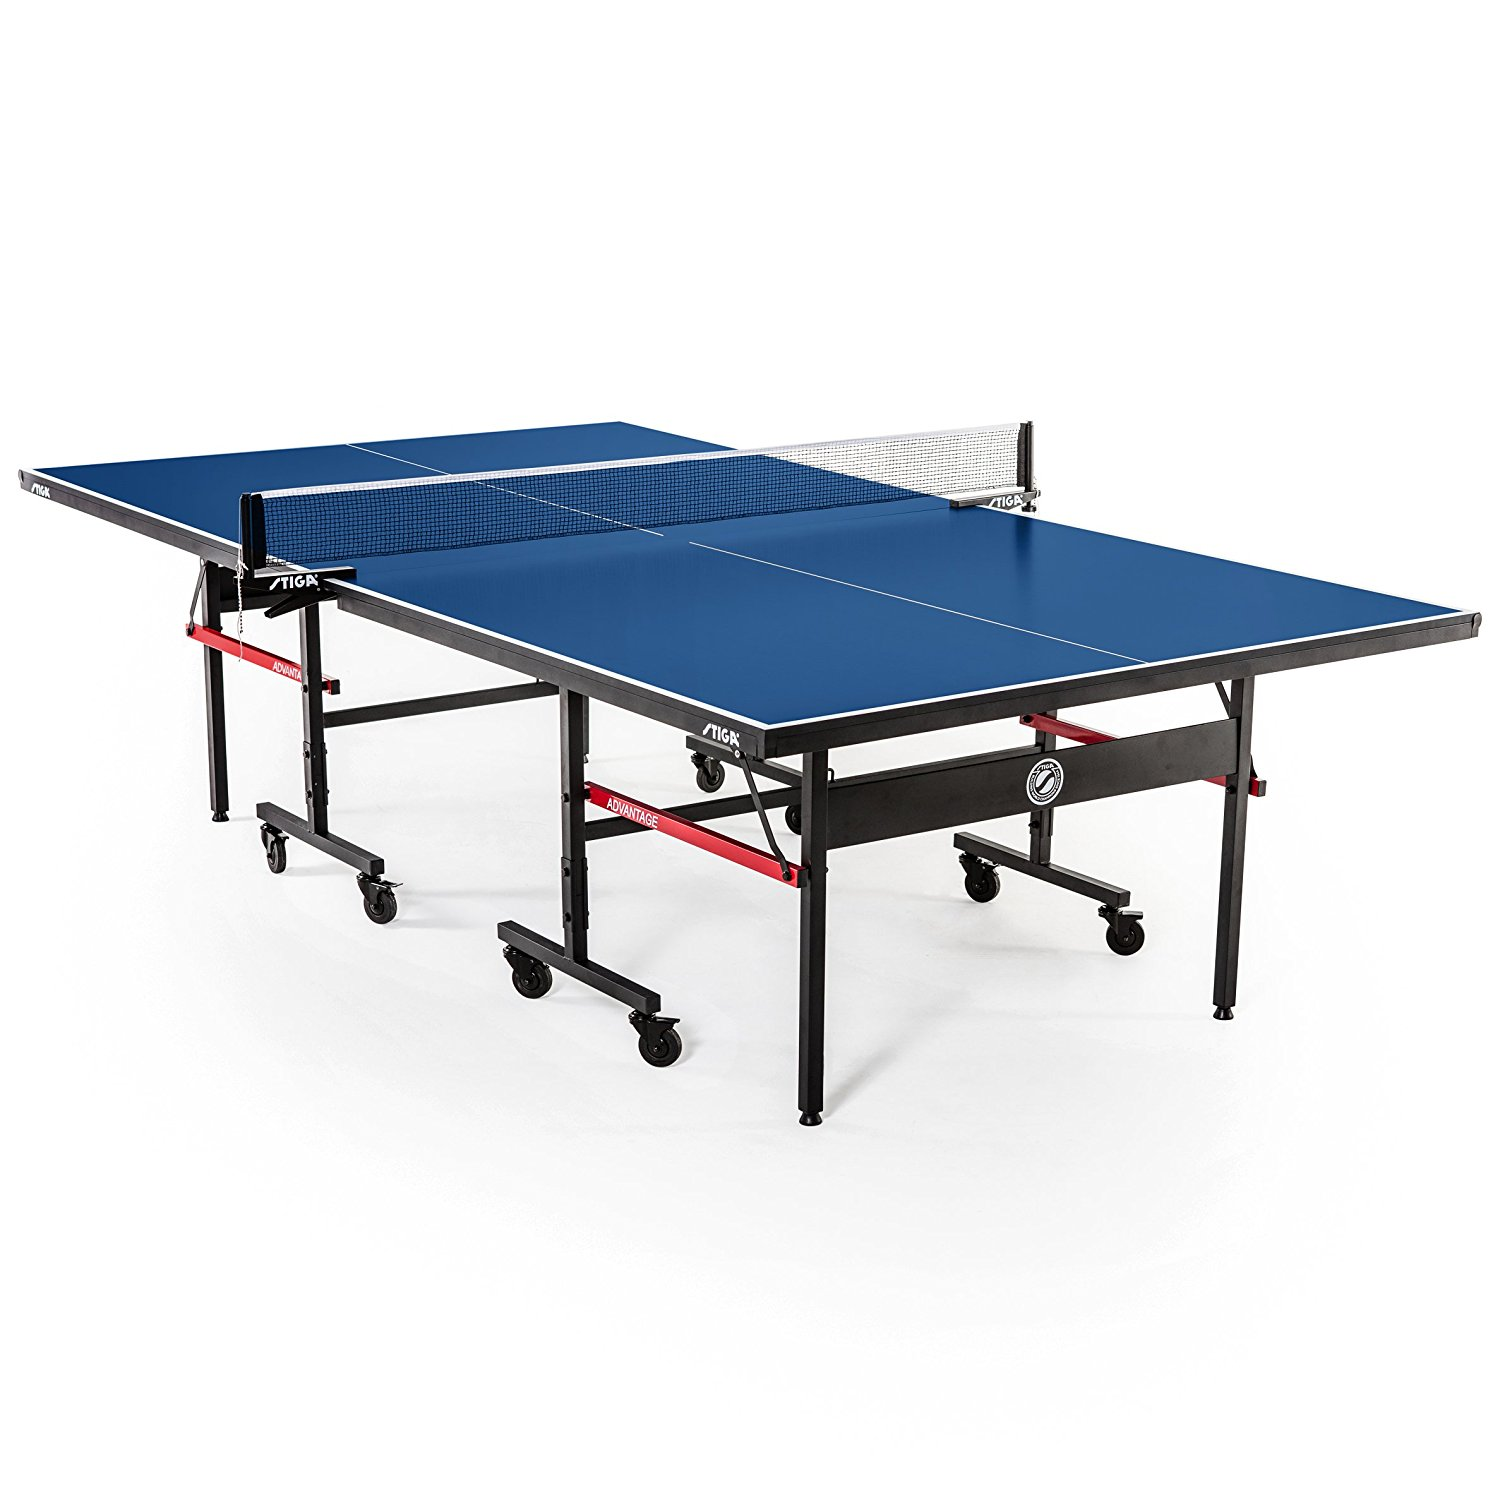 Bon Most Versatile Ping Pong Table U0026 Our TOP PICK. STIGA Advantage